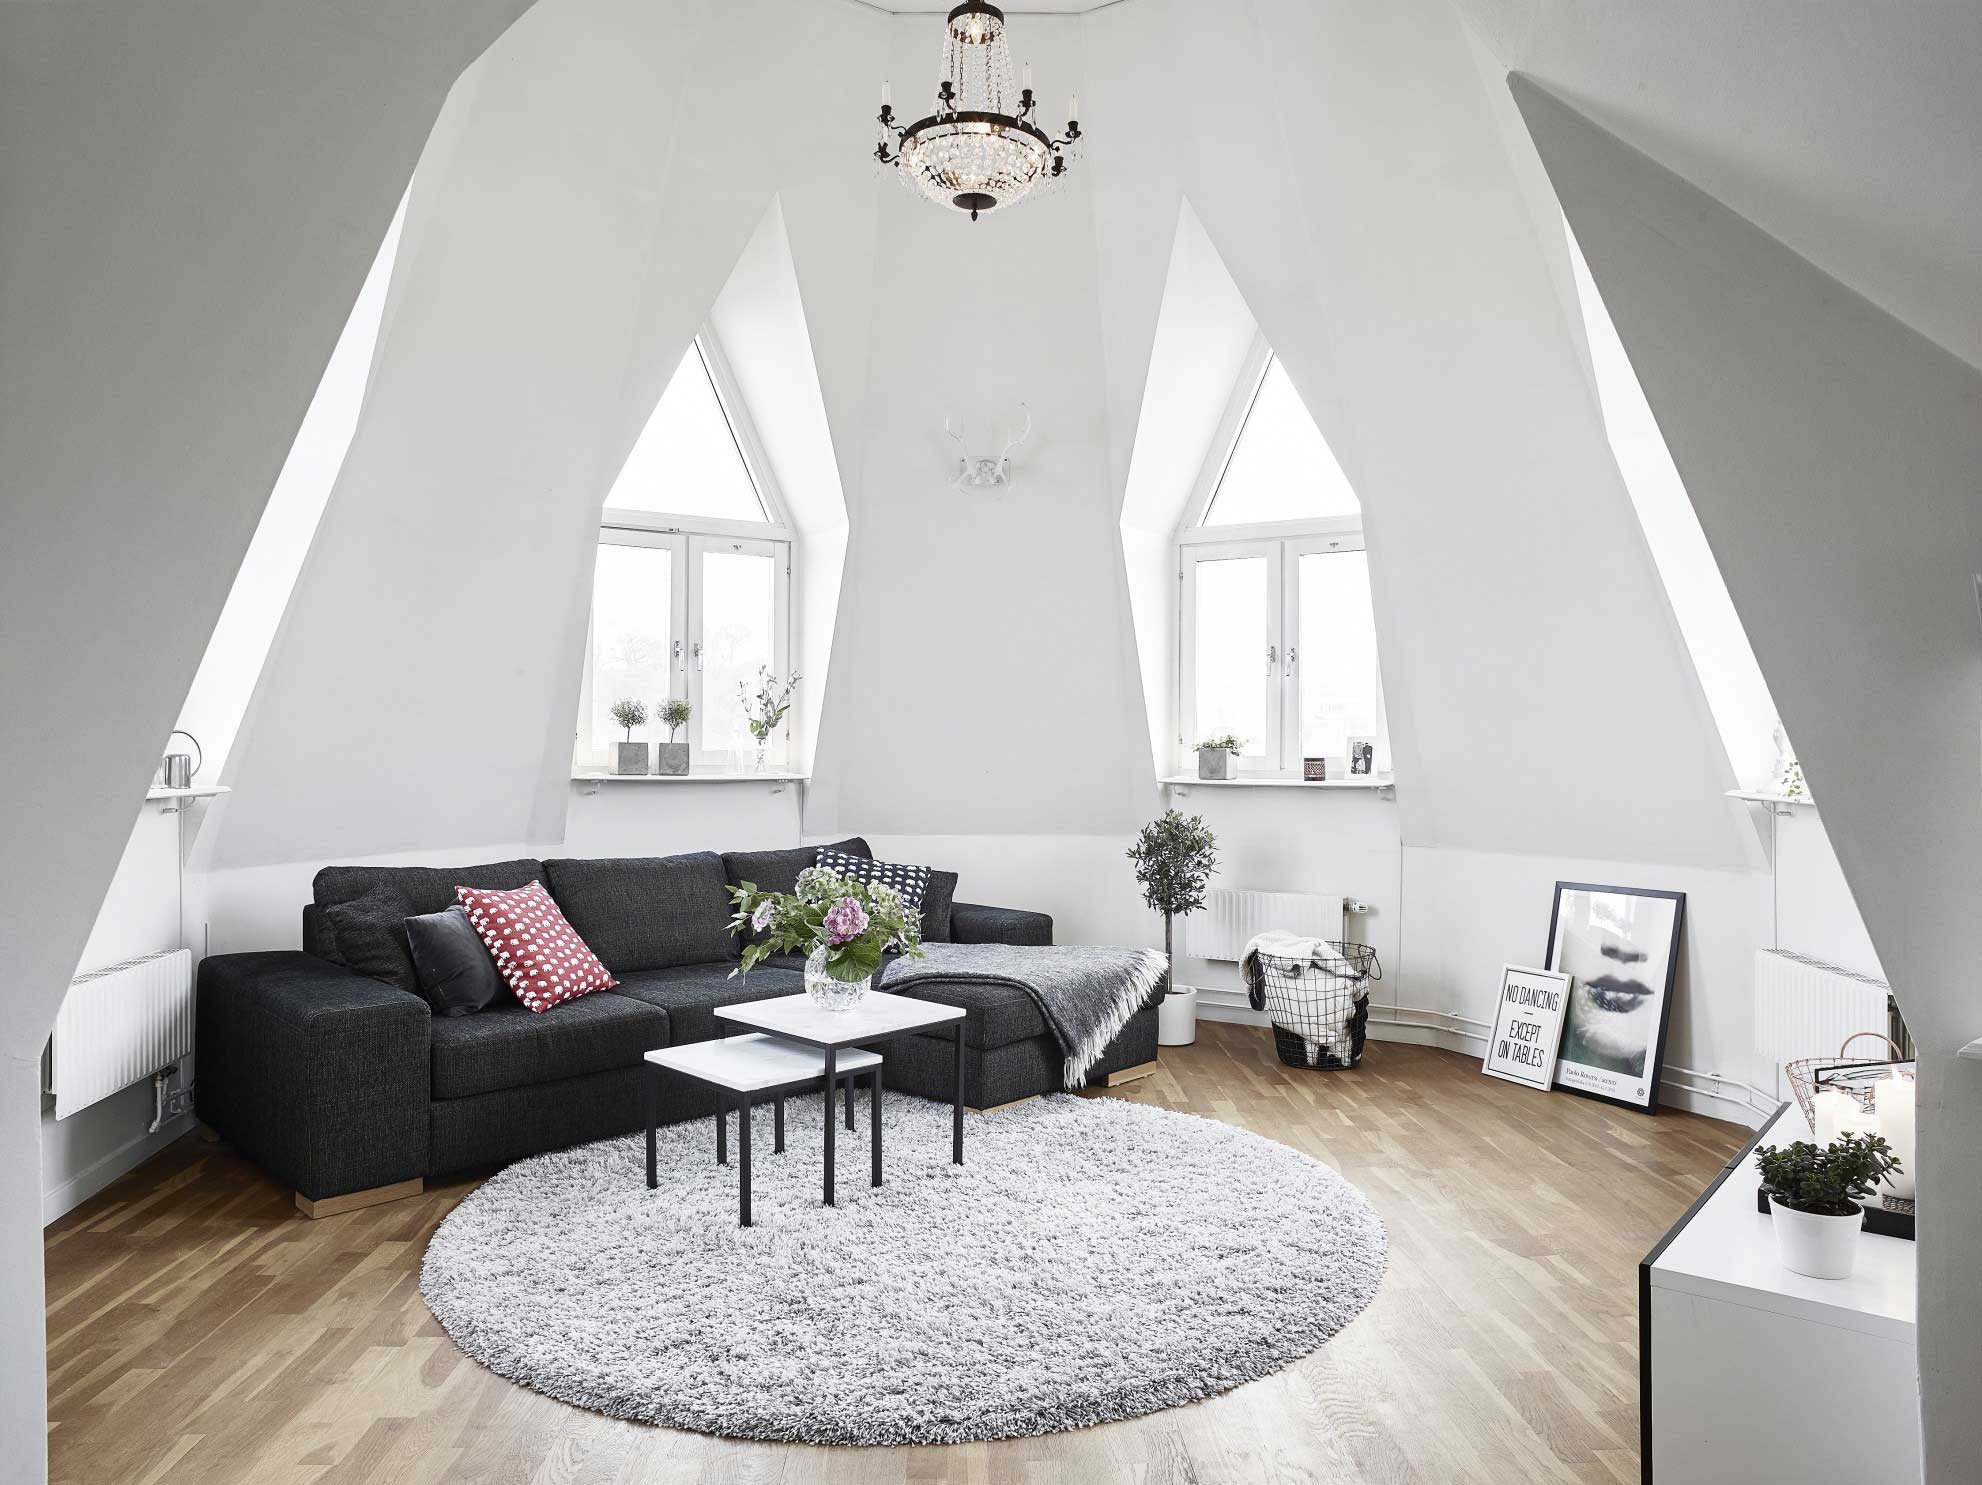 Oddly shaped attic living room